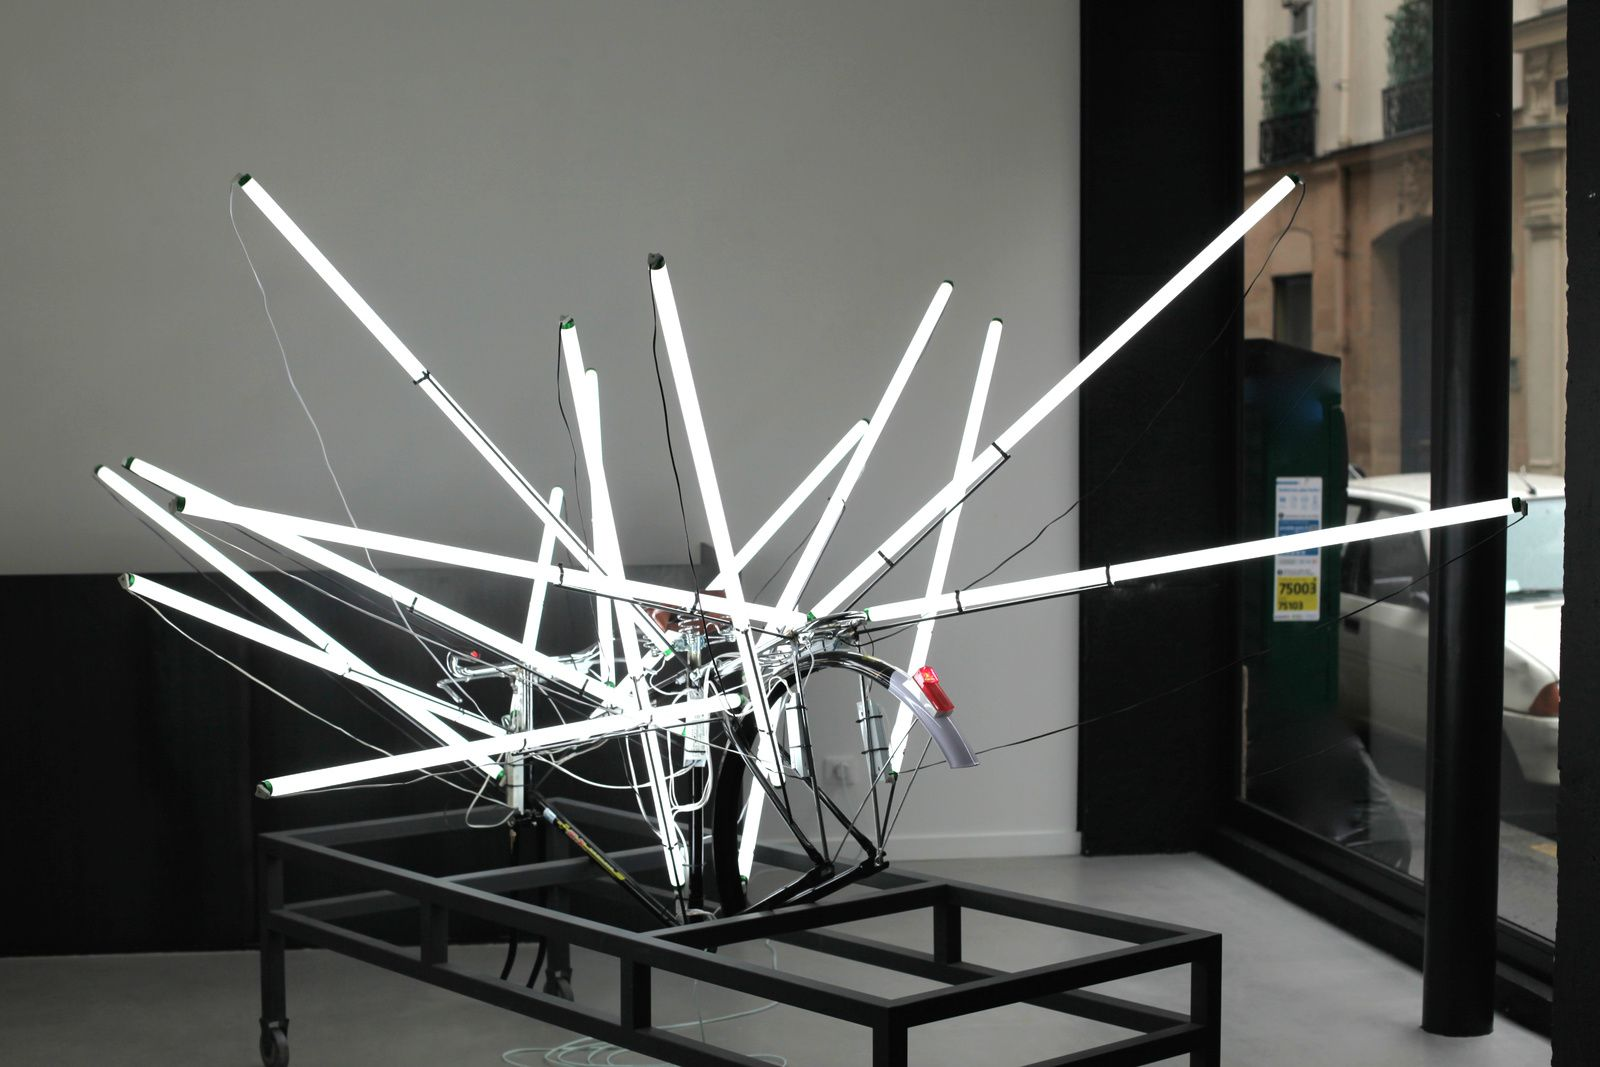 """Shangaï Electricity Mall, Bicycle"", 2012 de Shi Qing - Courtesy Galerie Paris-Bejing © Photo Éric Simon"